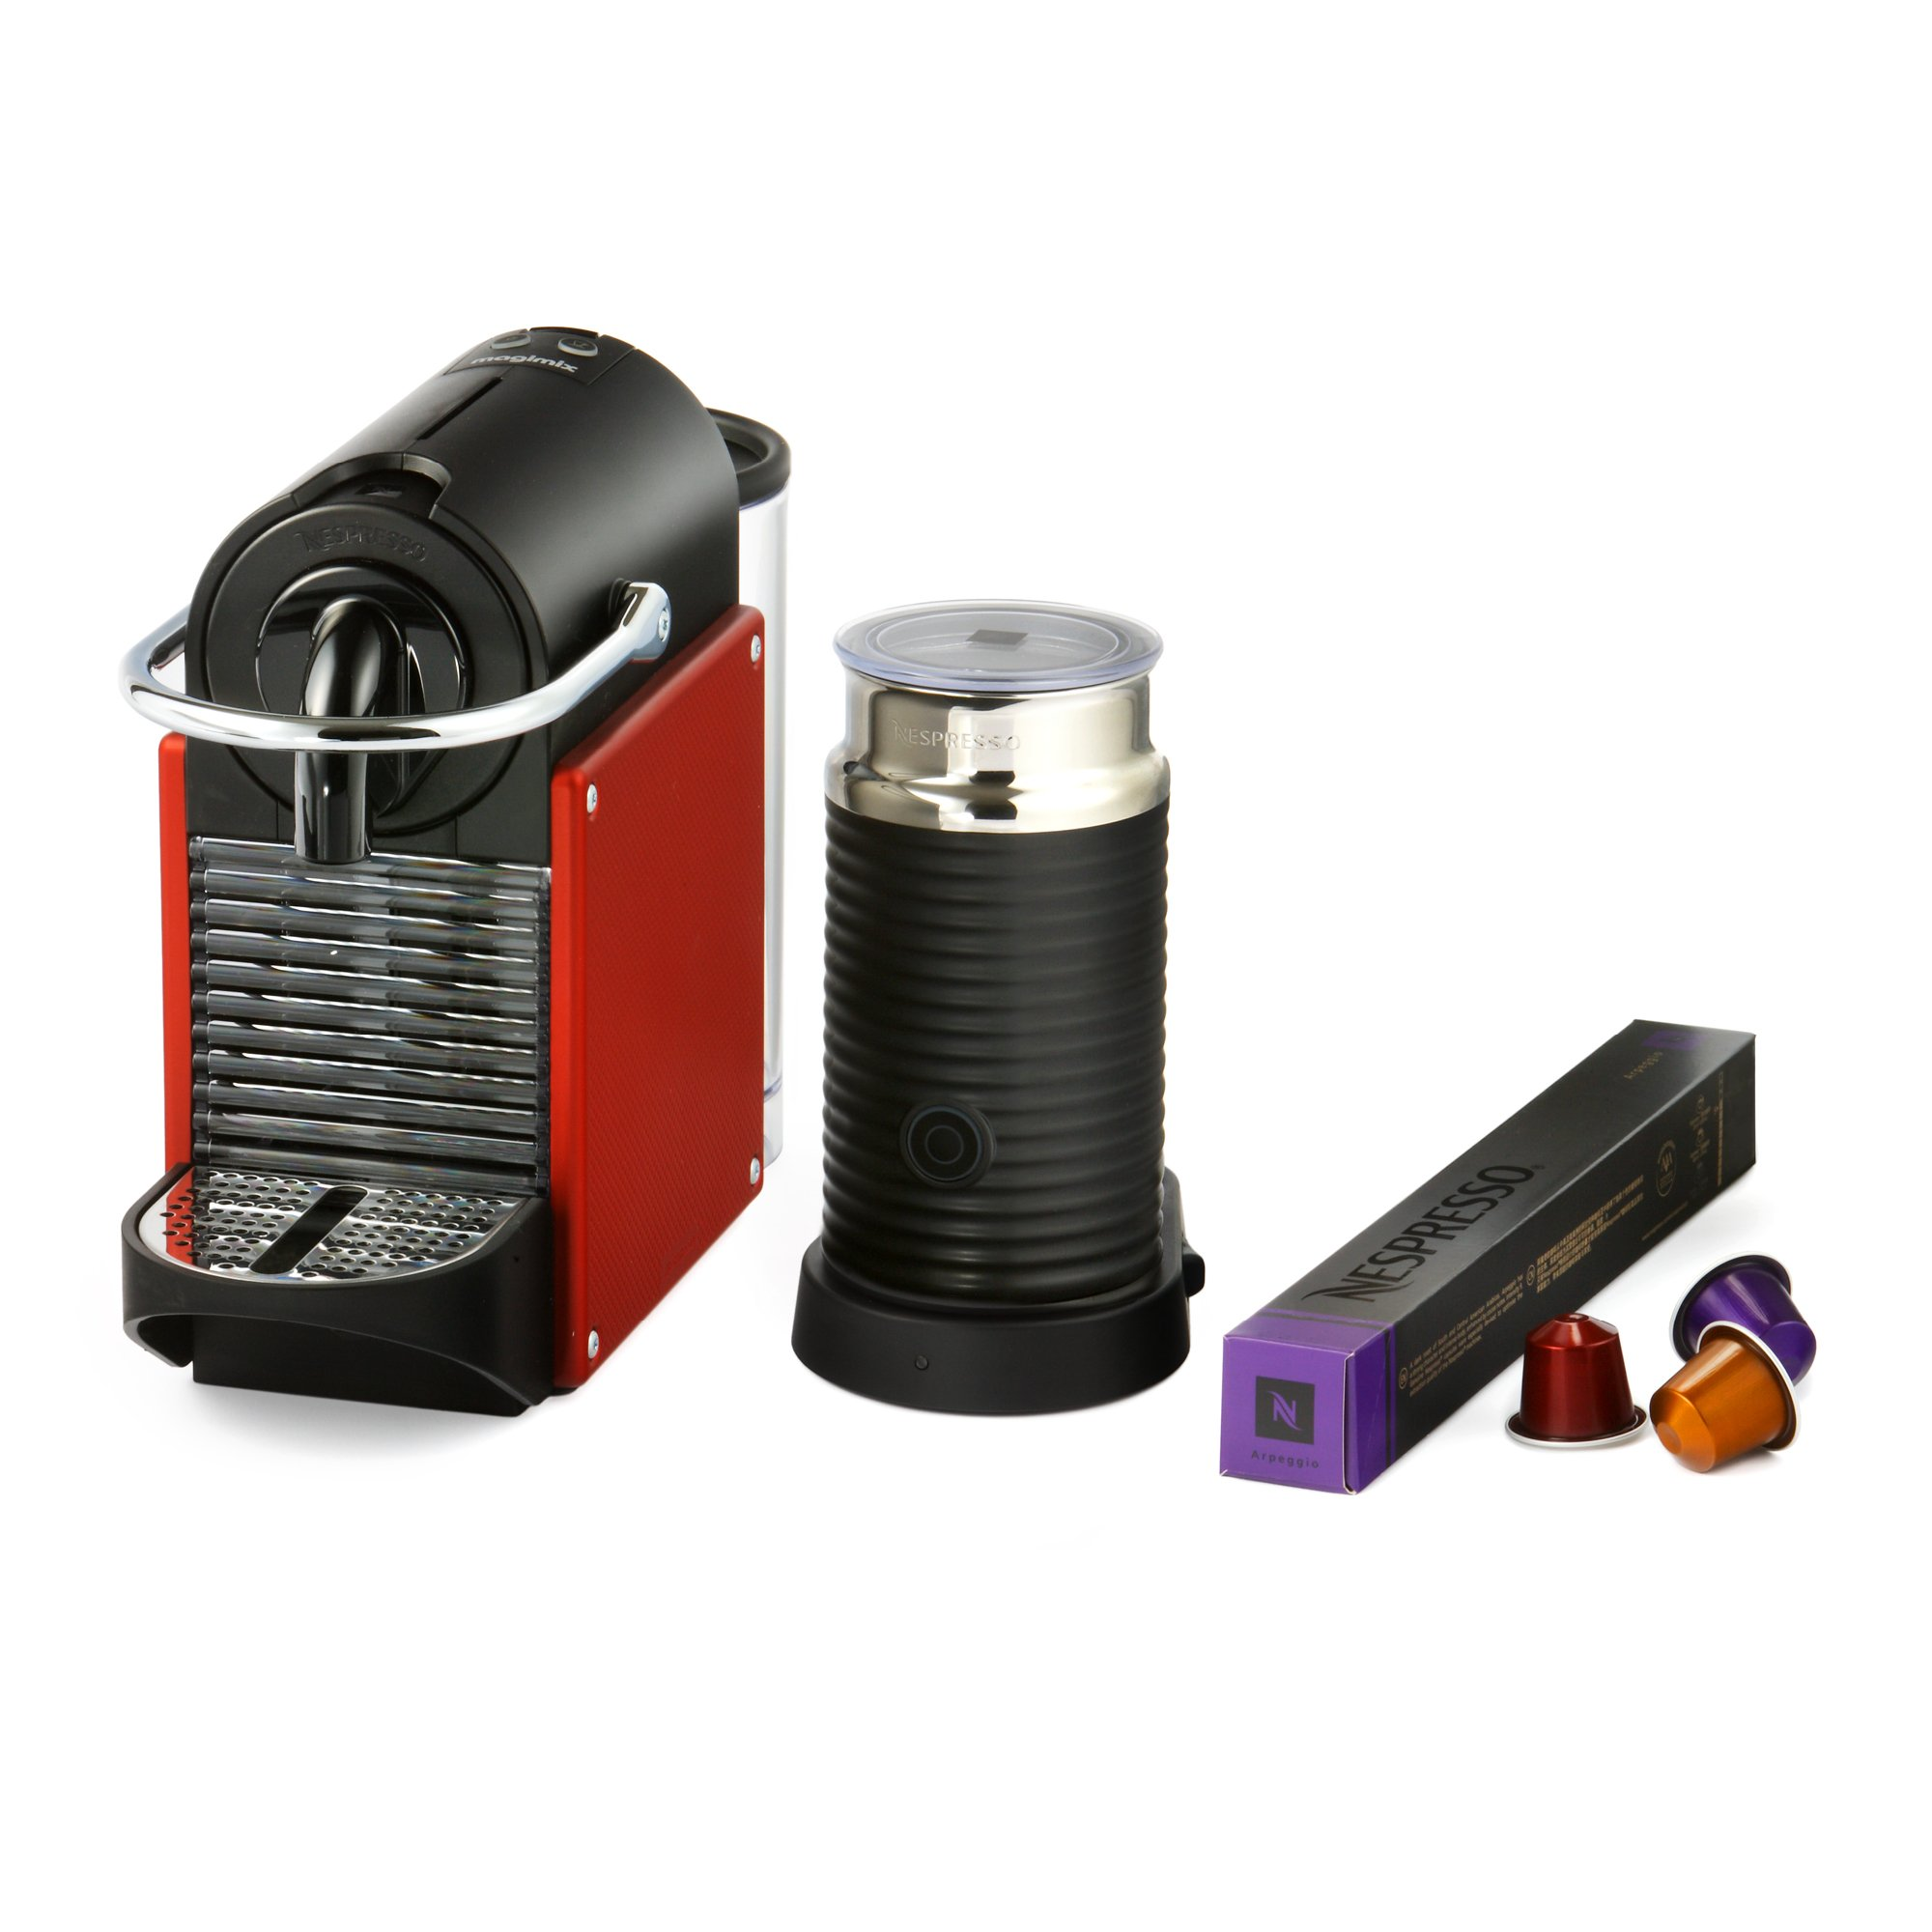 magimix nespresso pixie coffee machine with aeroccino. Black Bedroom Furniture Sets. Home Design Ideas